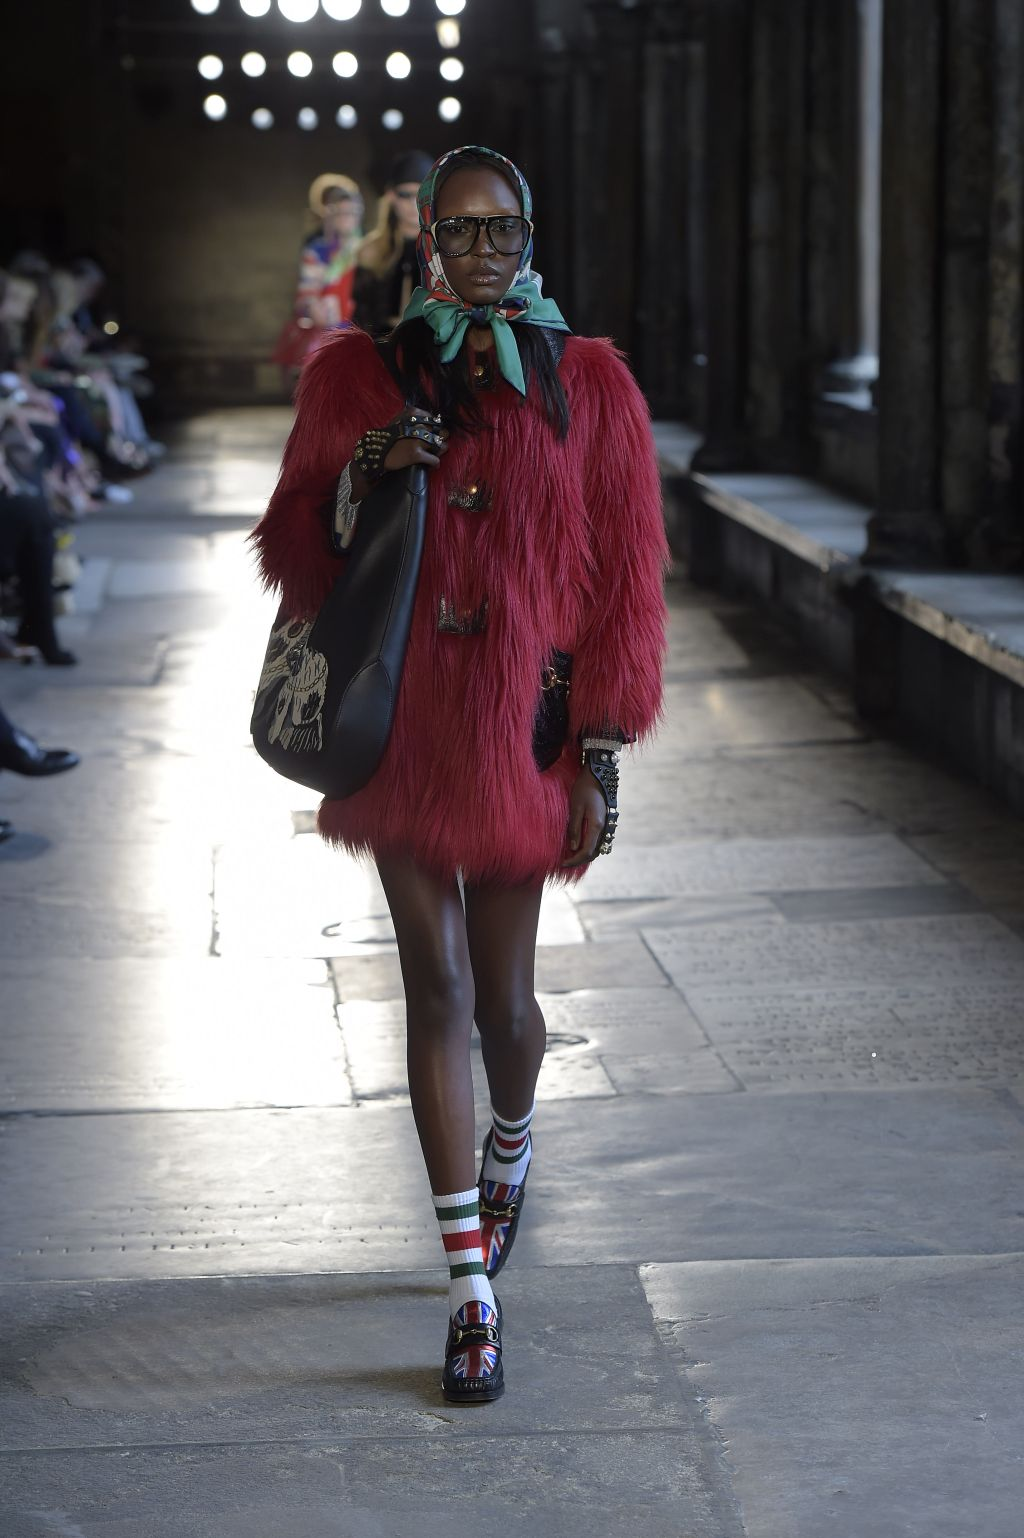 Gucci Resort 2017 The Show in London's Westminster Abbey